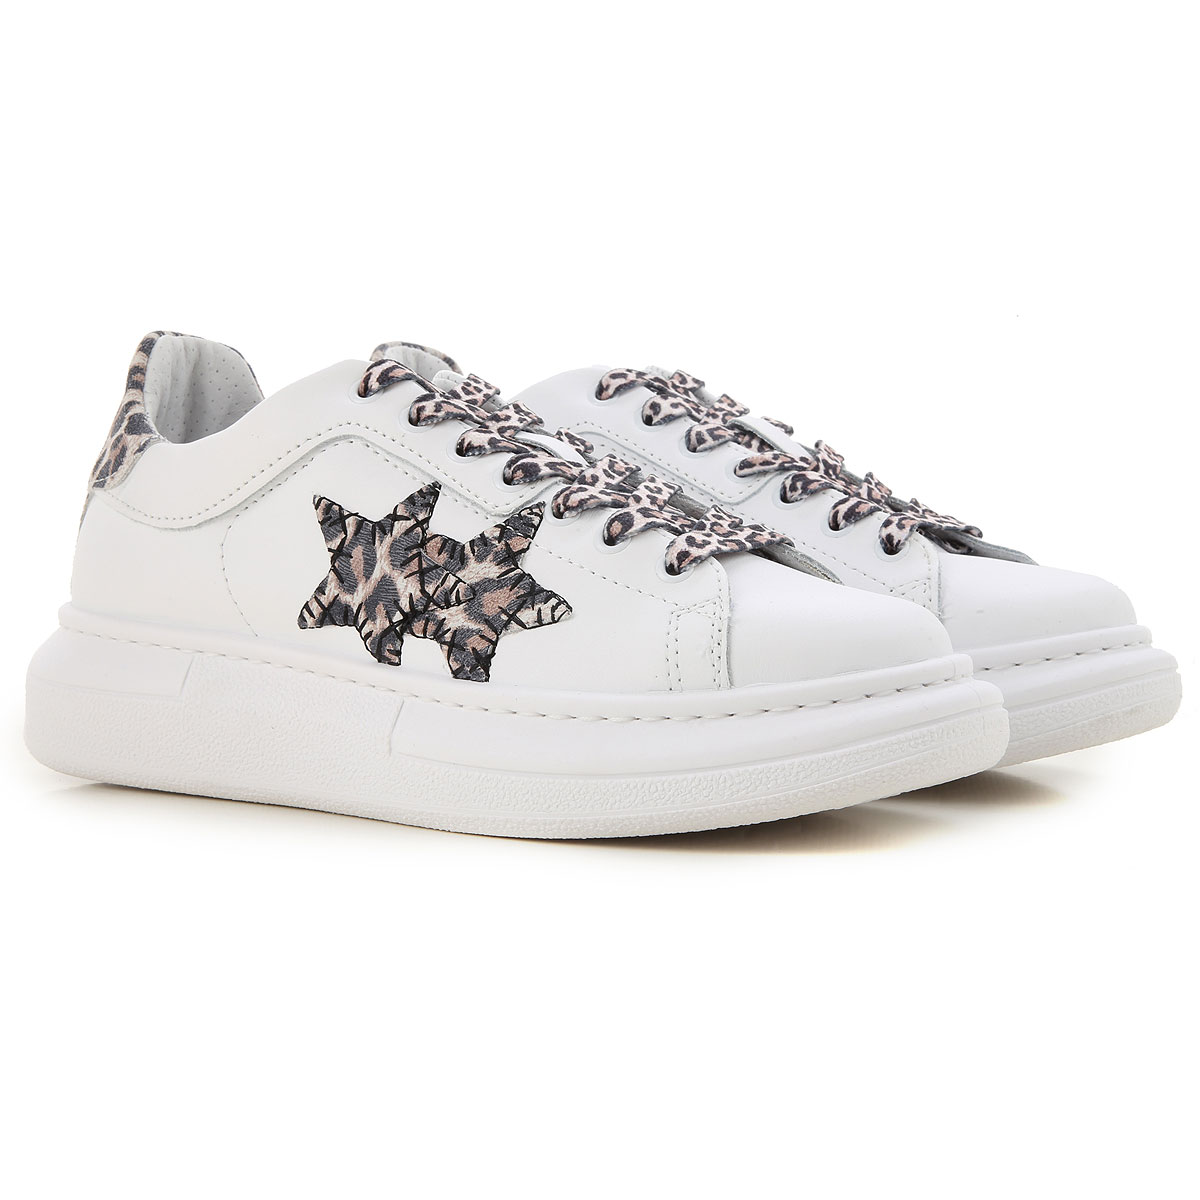 2Star Sneakers for Women On Sale, White, Leather, 2019, 10 11 7 8 9